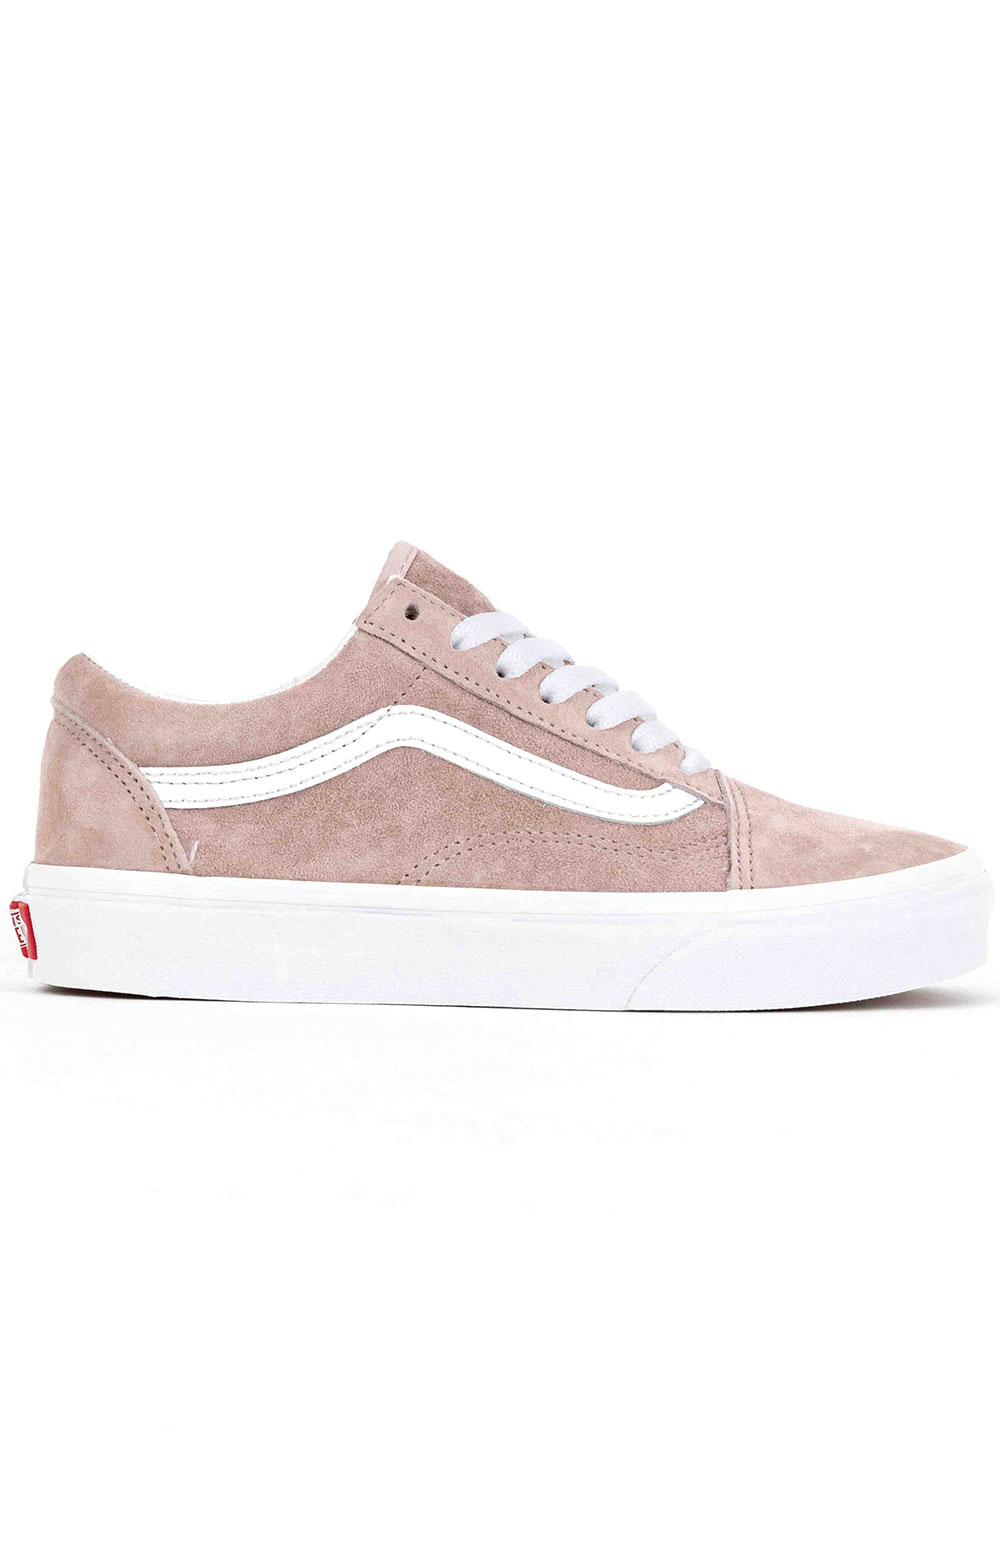 (BV5V79) Pig Suede Old Skool Shoe - Shadow Grey/True White